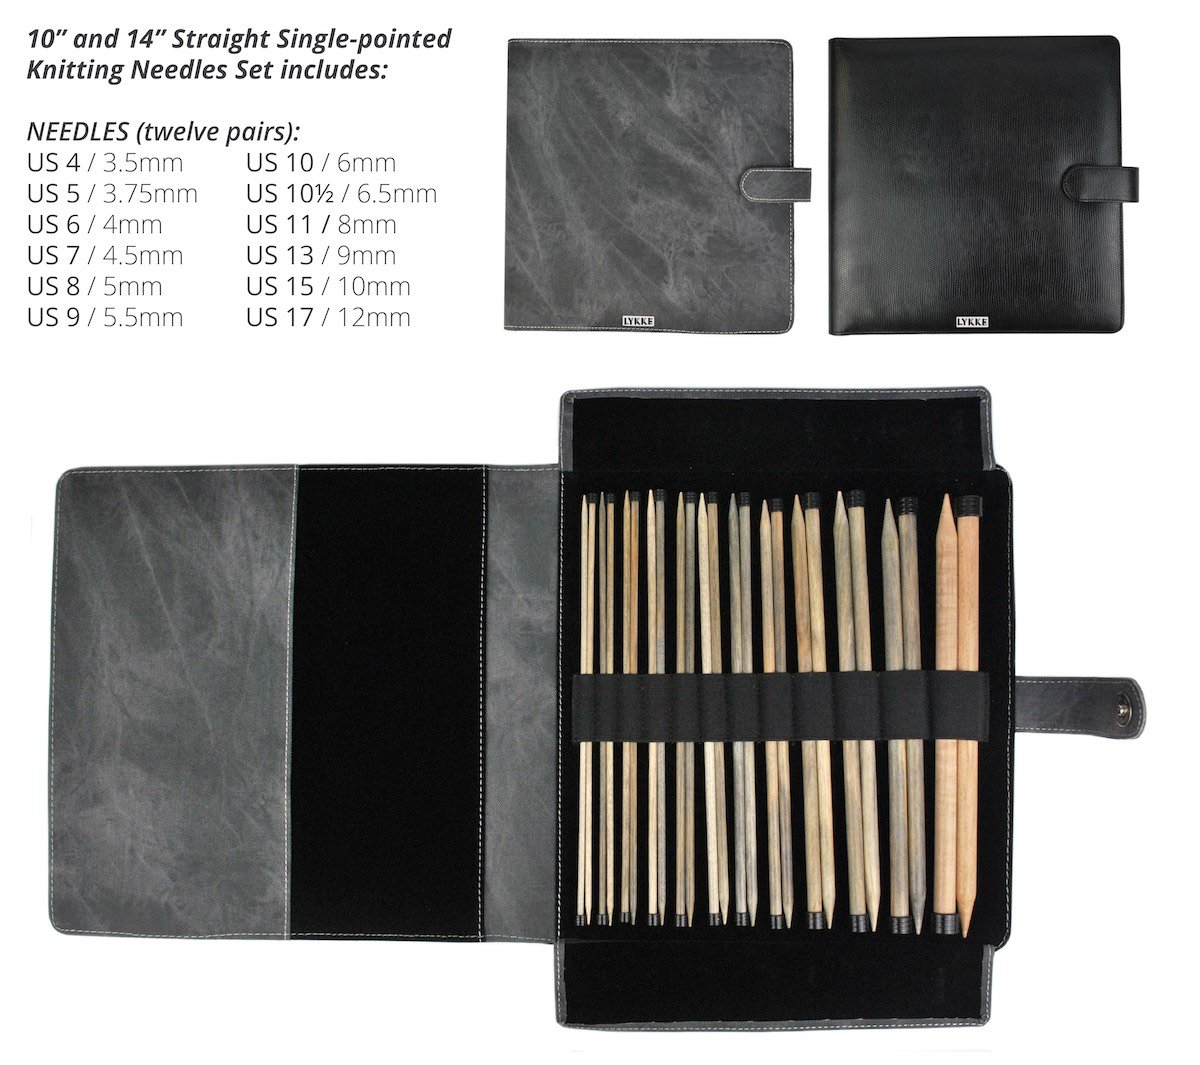 10 Straight-Pointed Needle Set - Denim Case